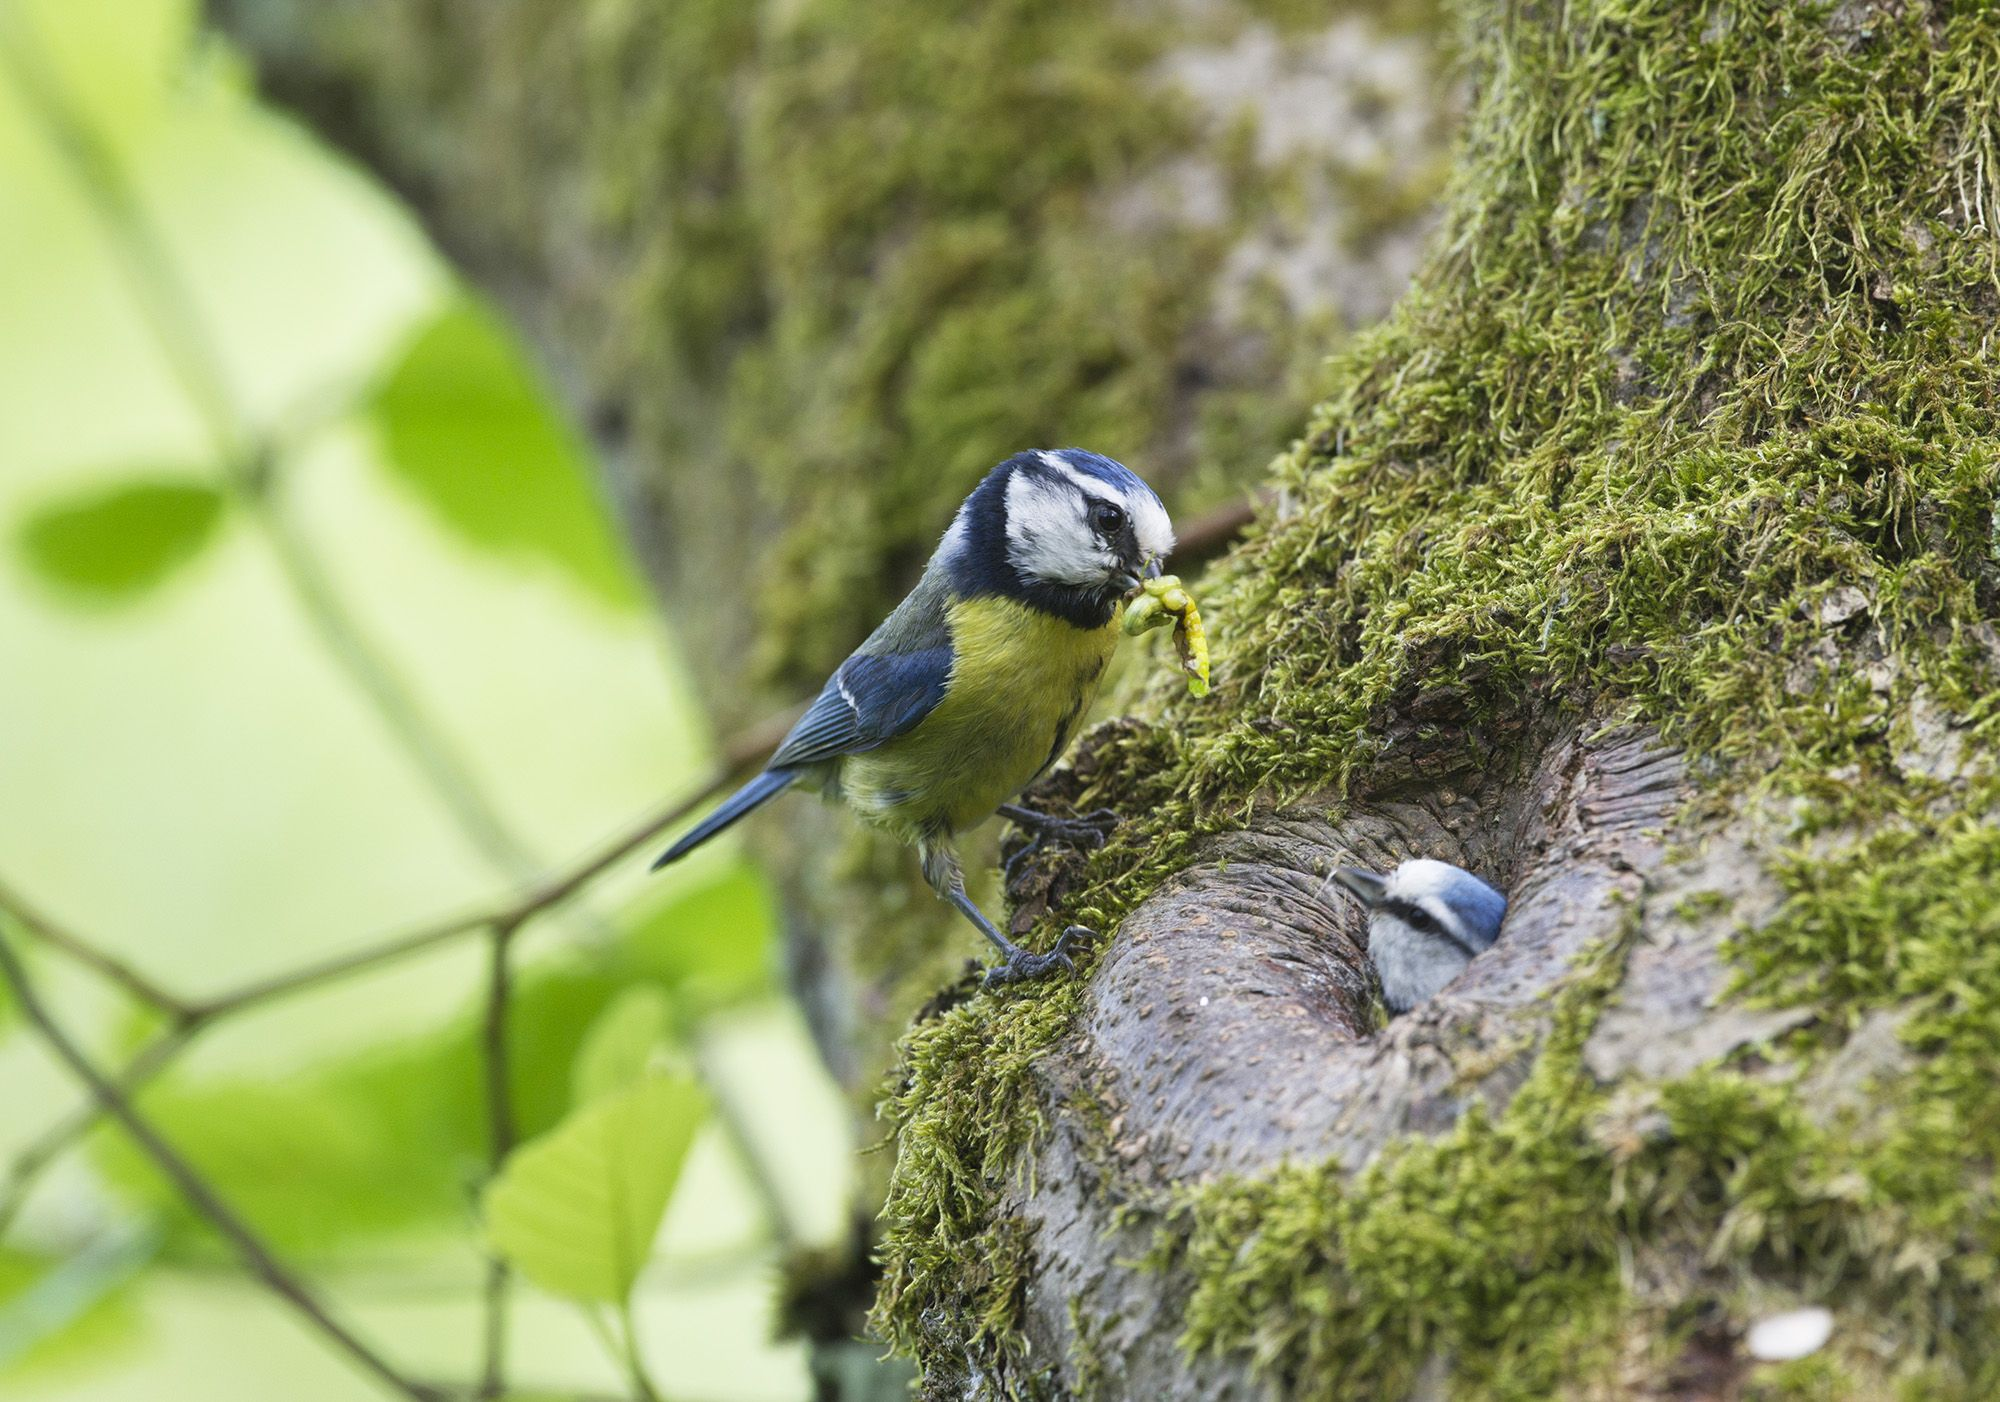 Seen a blue tit nest this spring? It's been a bad year for blue tits so far  – here's why